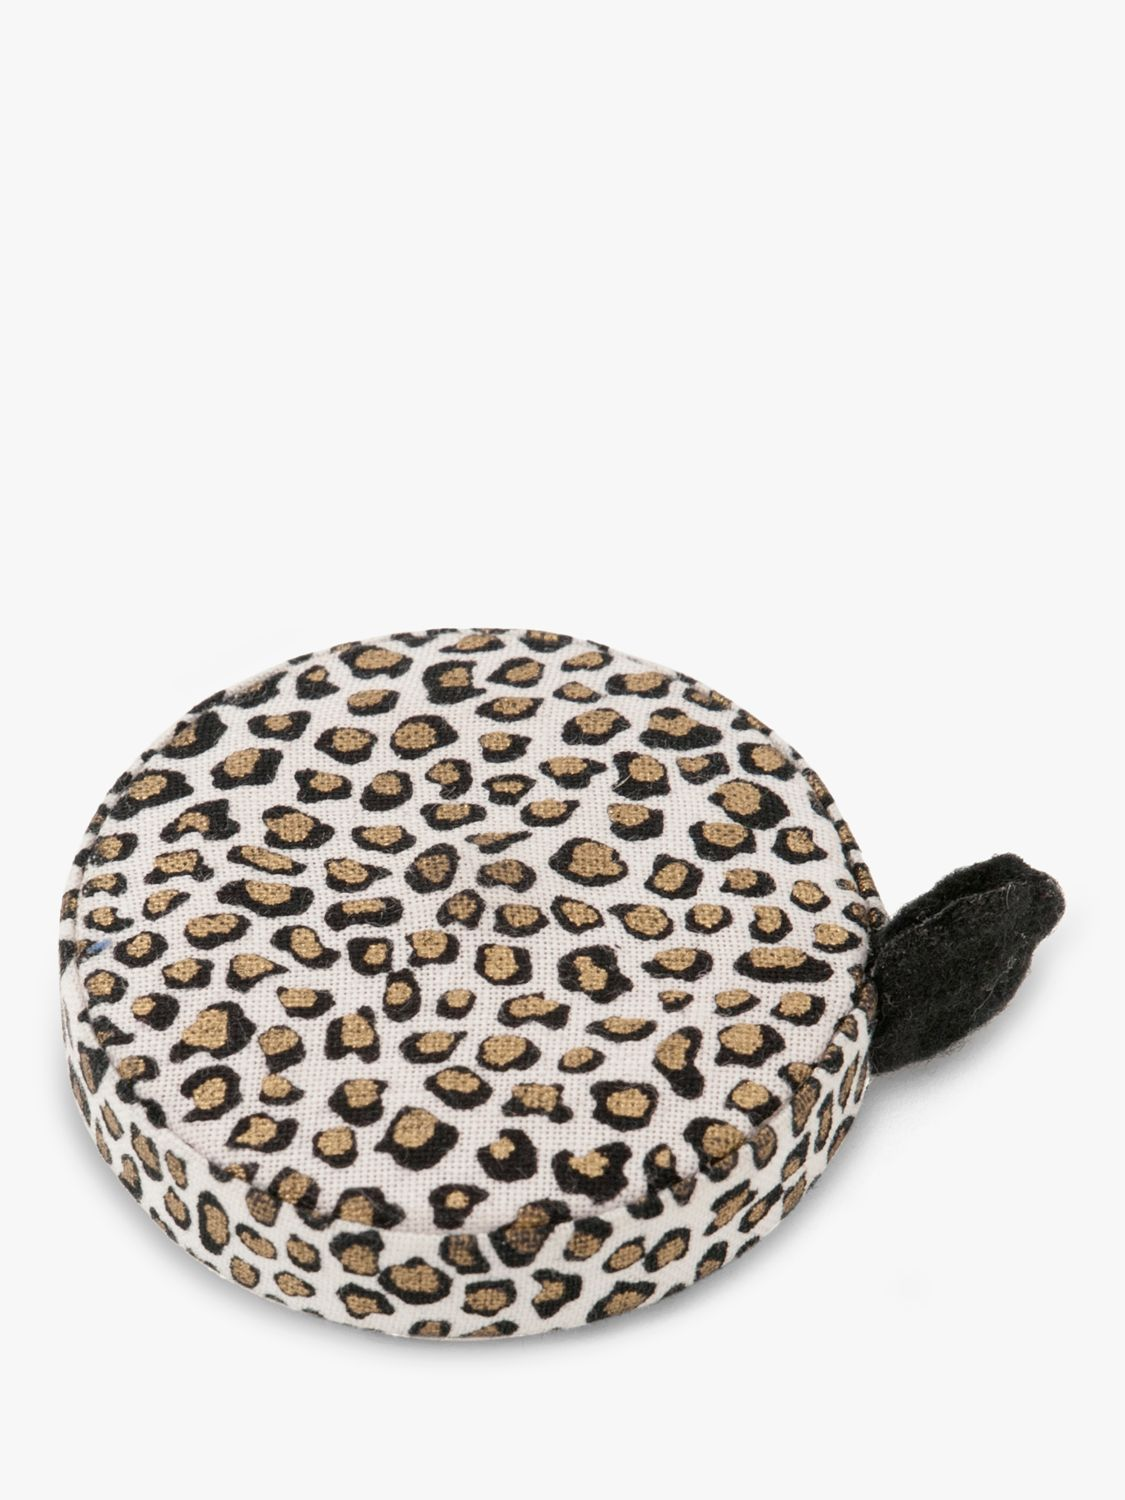 Groves Groves Animal Print Dressmaking Tape Measure, Multi